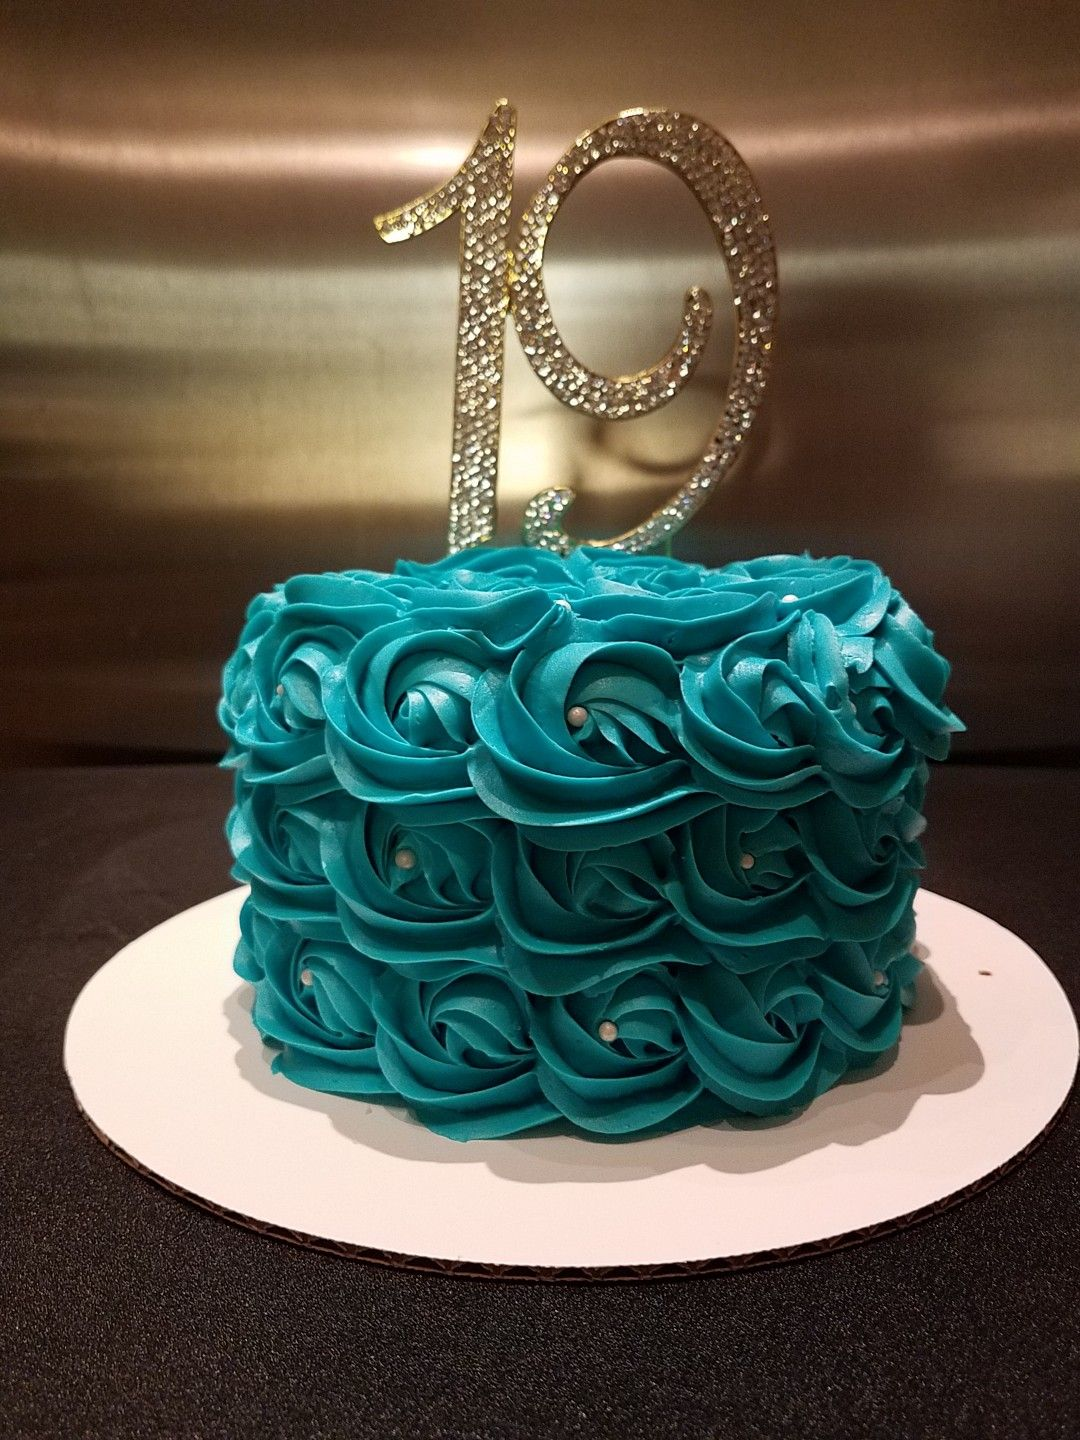 19th Birthday Cake Teal Rosettes Butter Cream Icing Girl